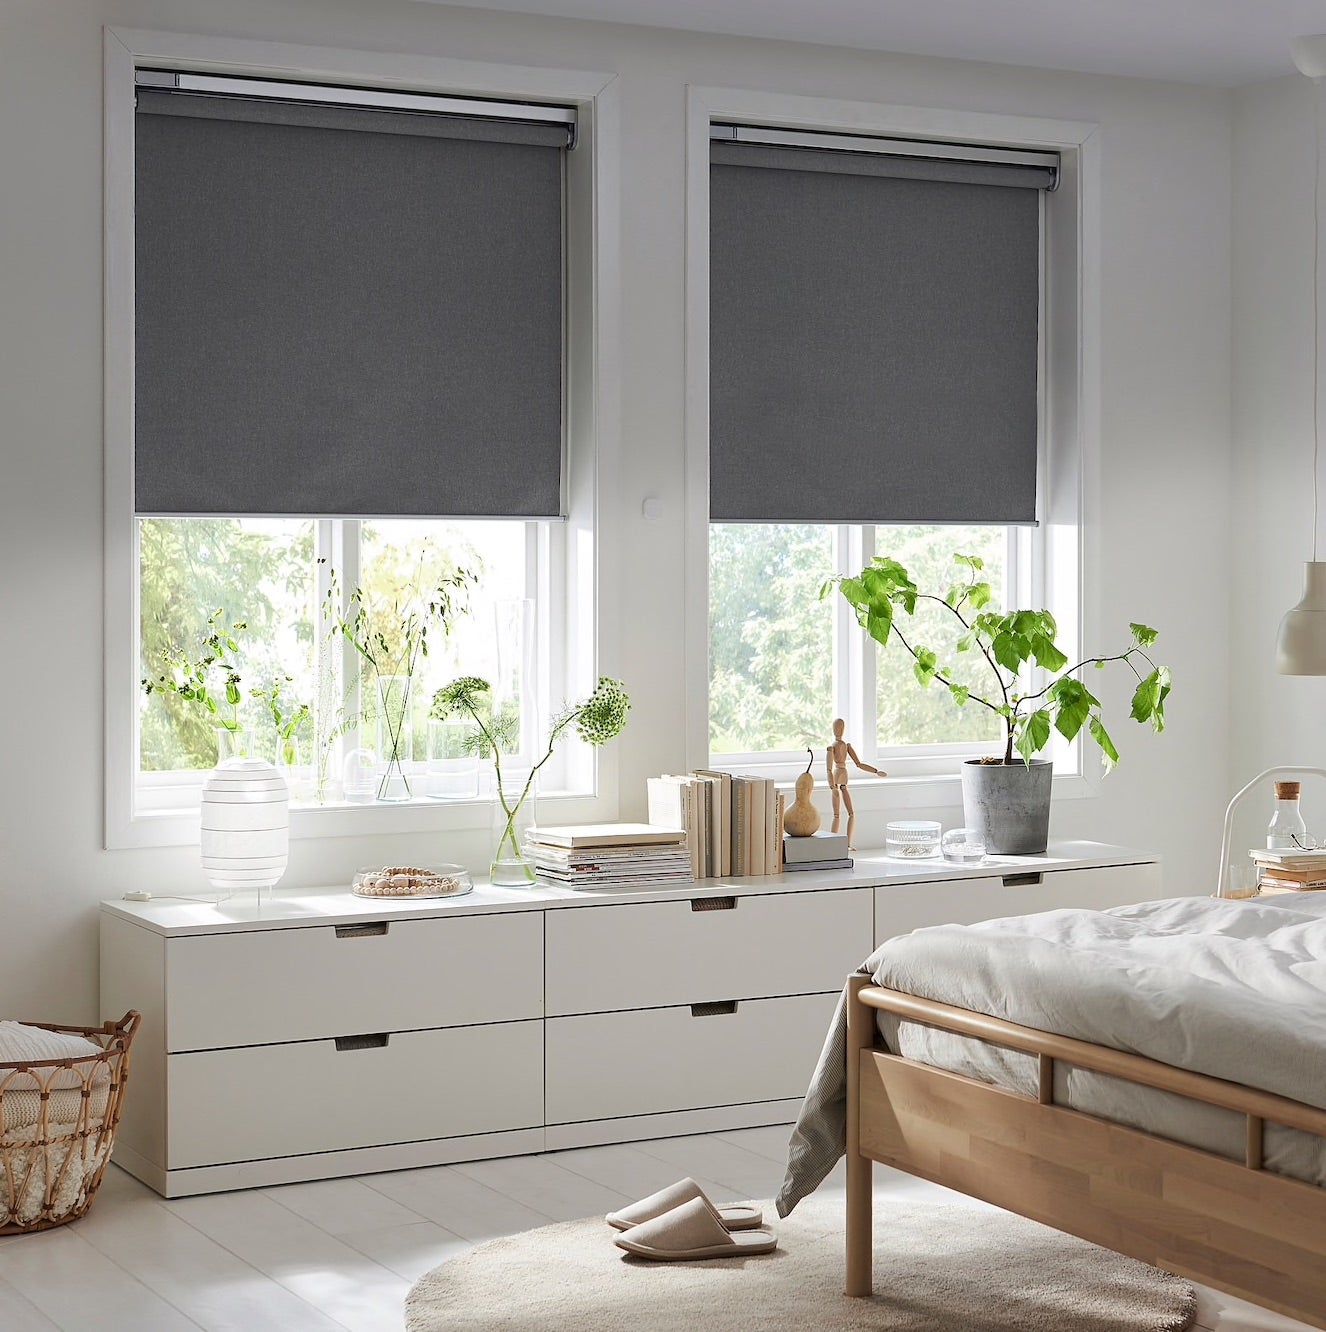 IKEA blinds